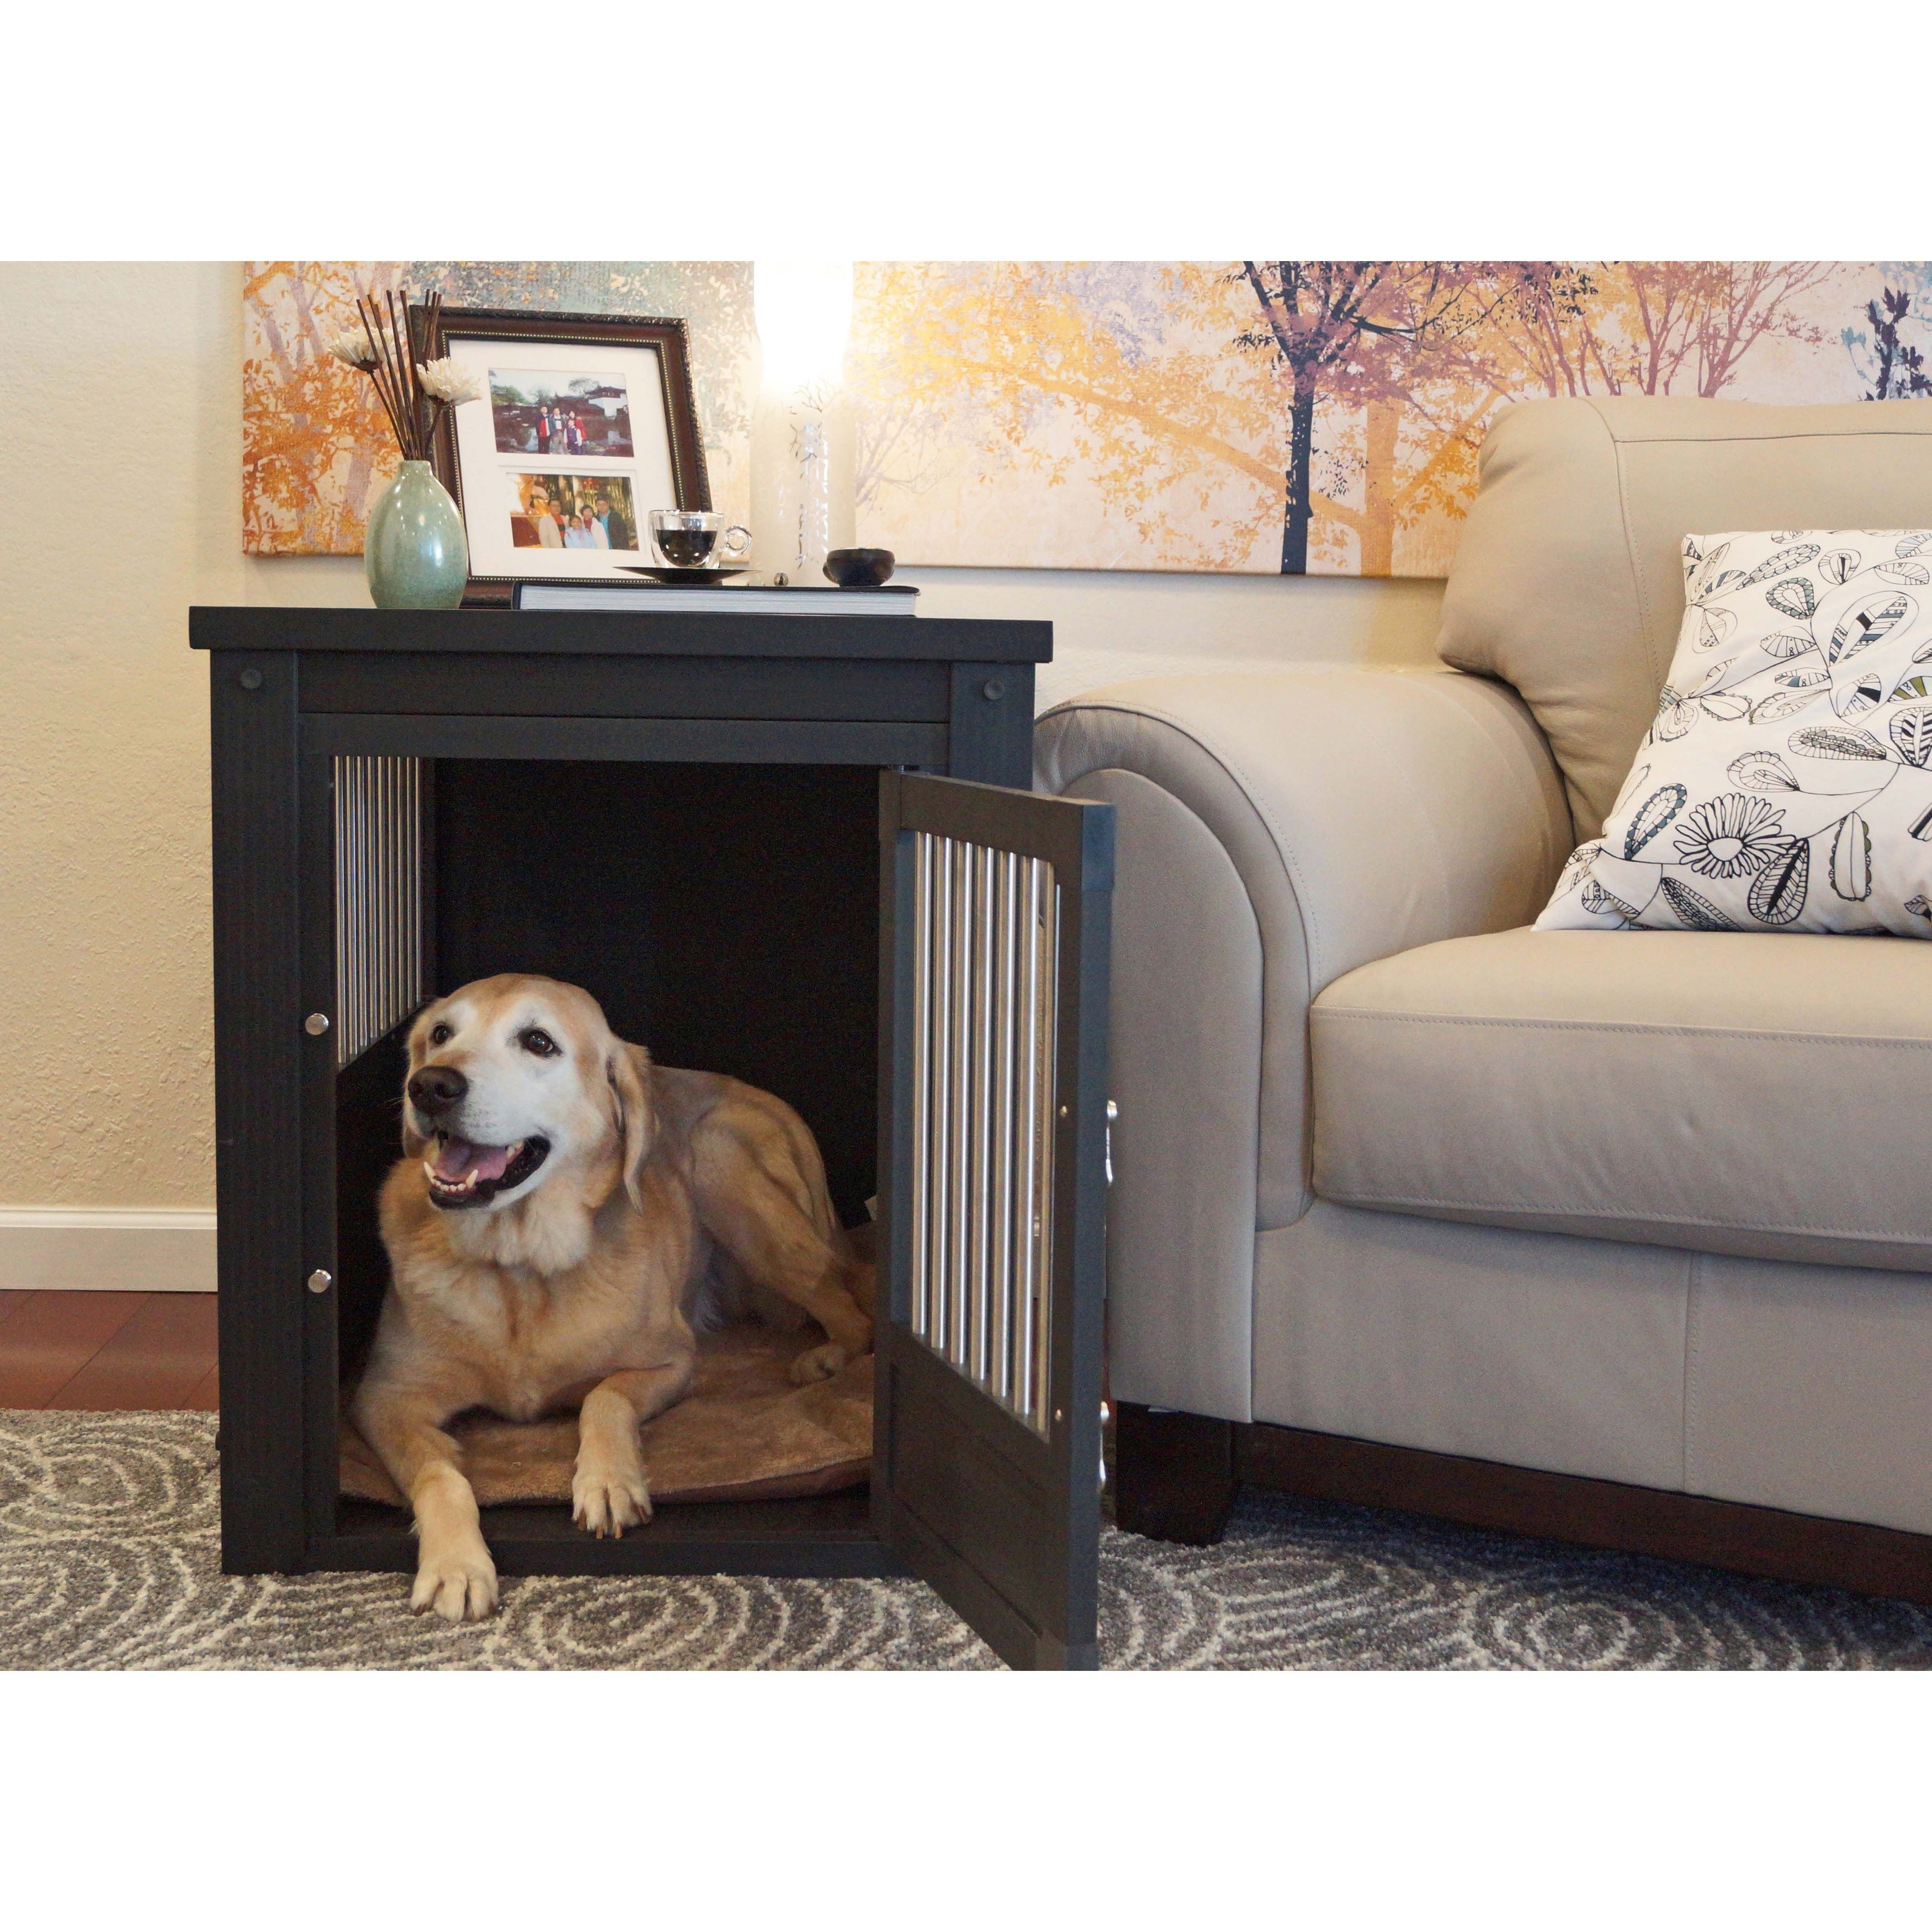 Pinta ecoFLEX Dog Crate/ End Table with Stainless Steel S...